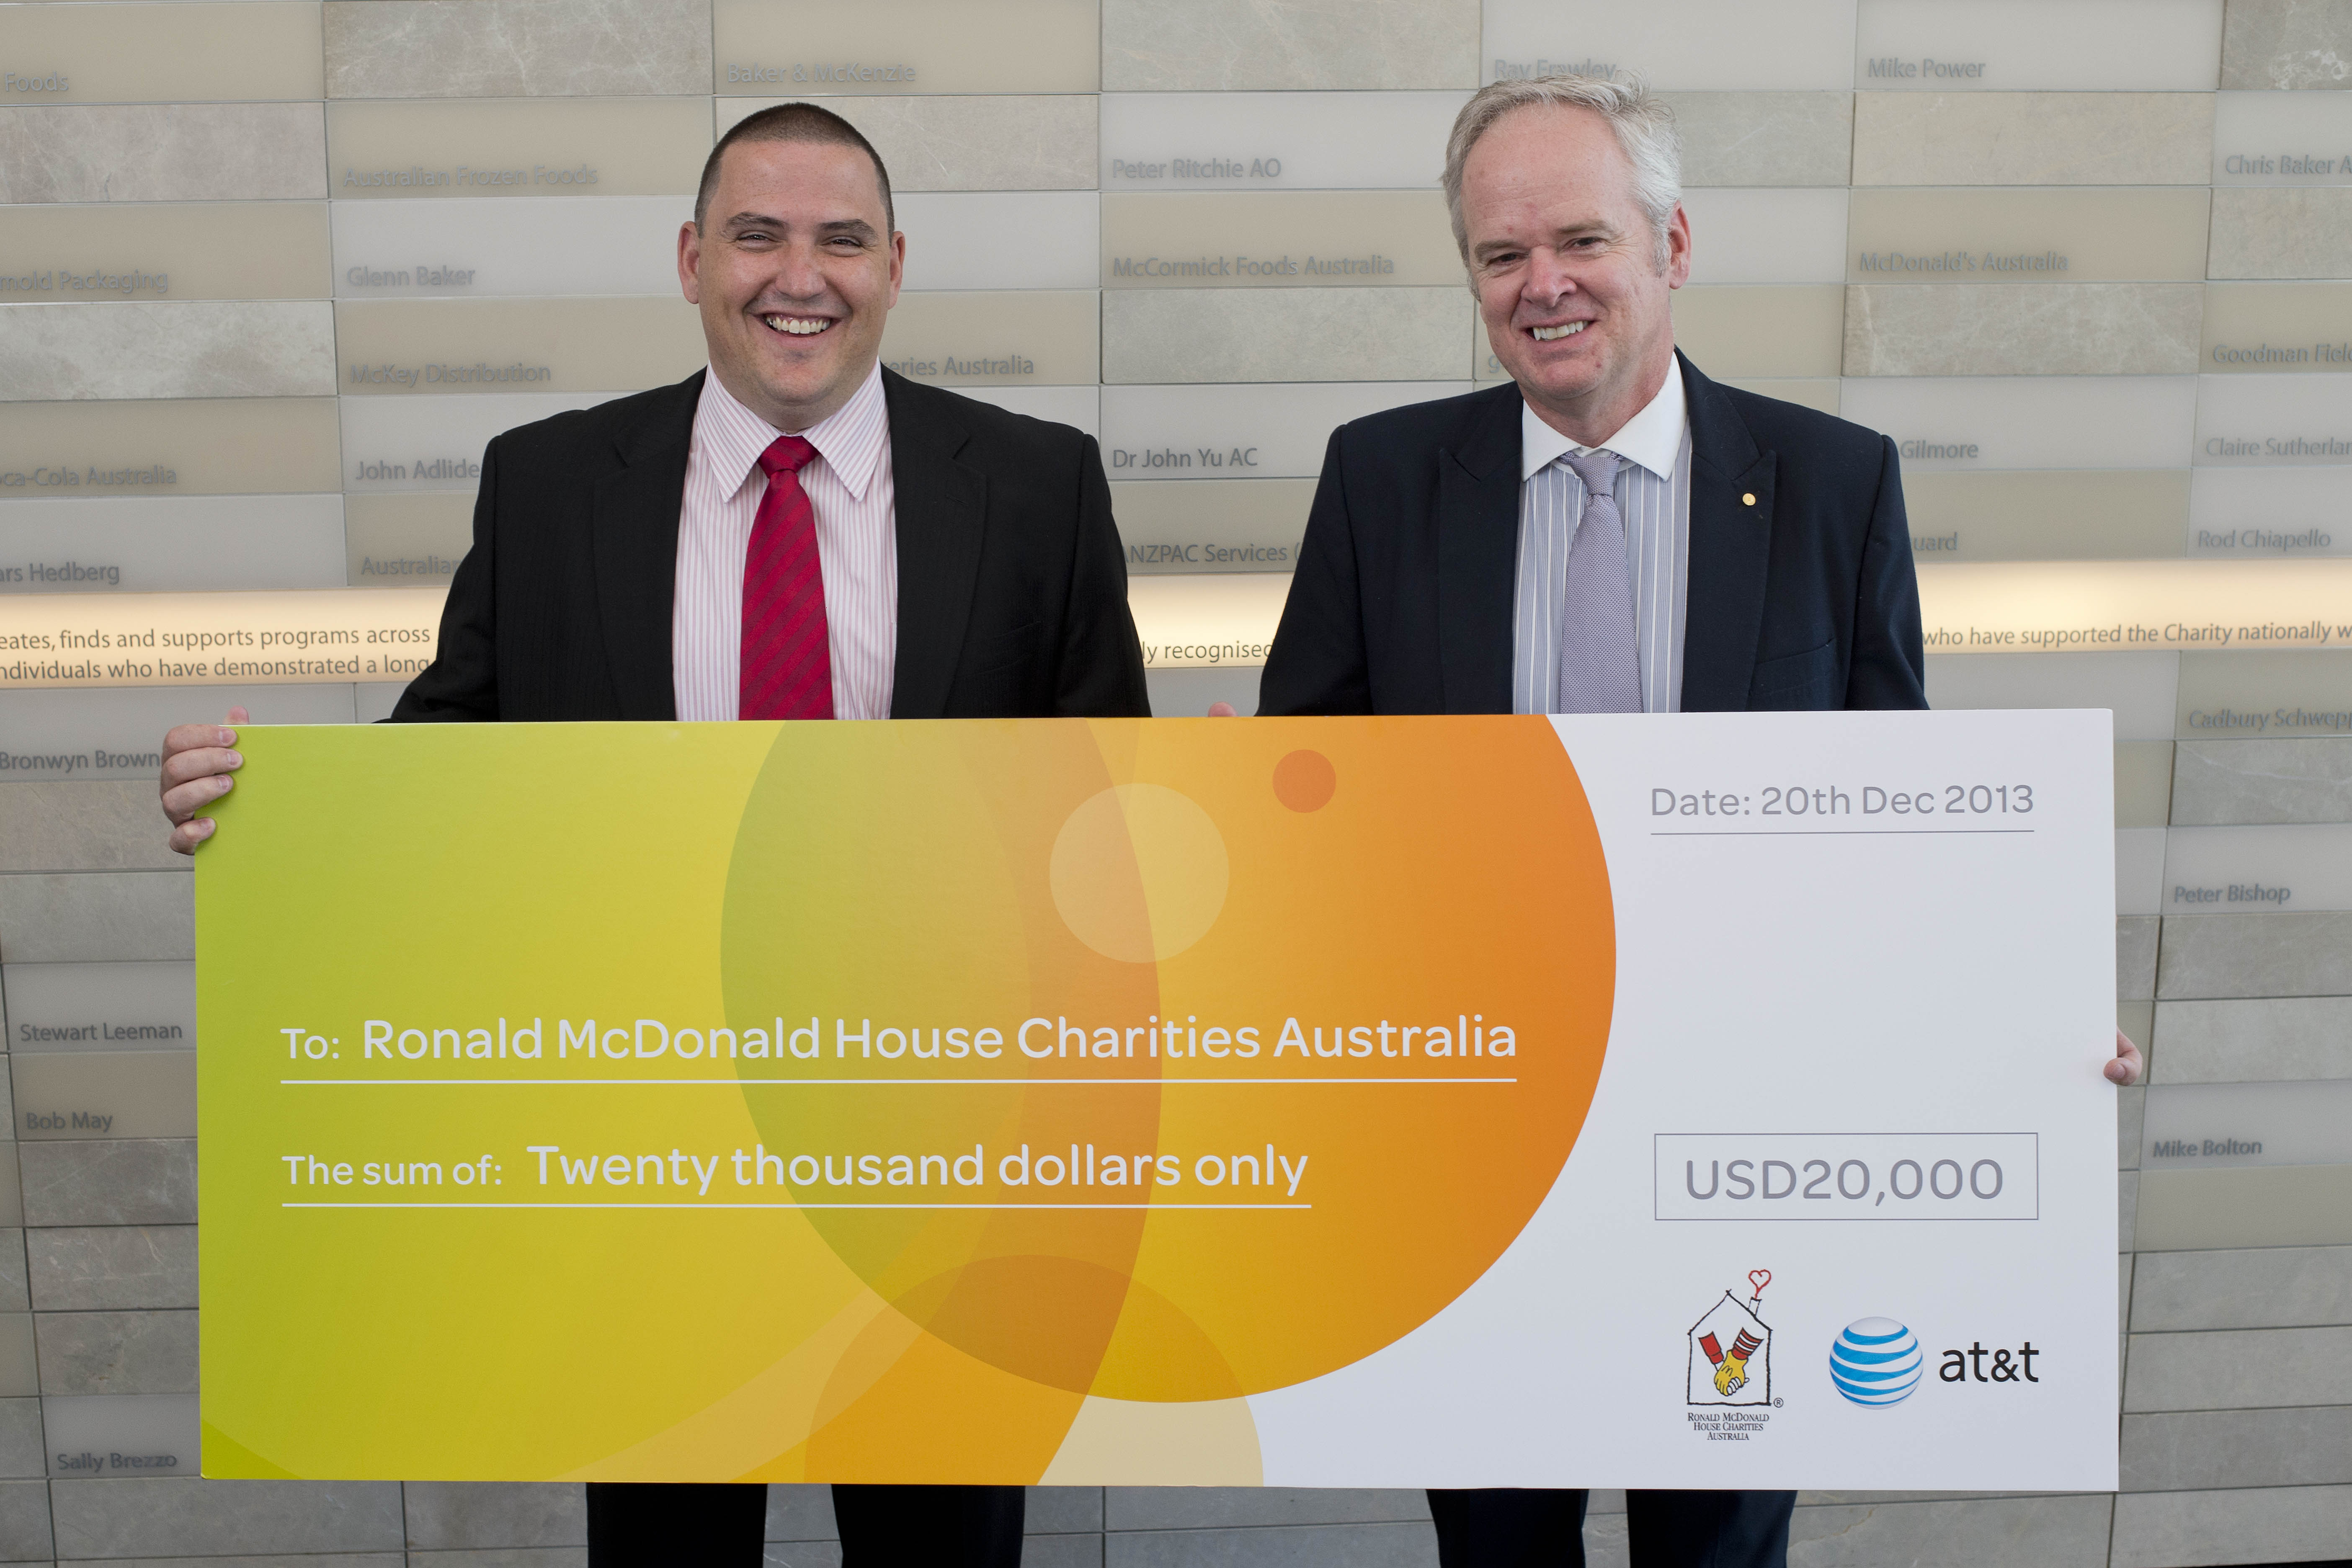 Ronald McDonald House Charities Australia (right) receives $20,000 donation from AT&T.